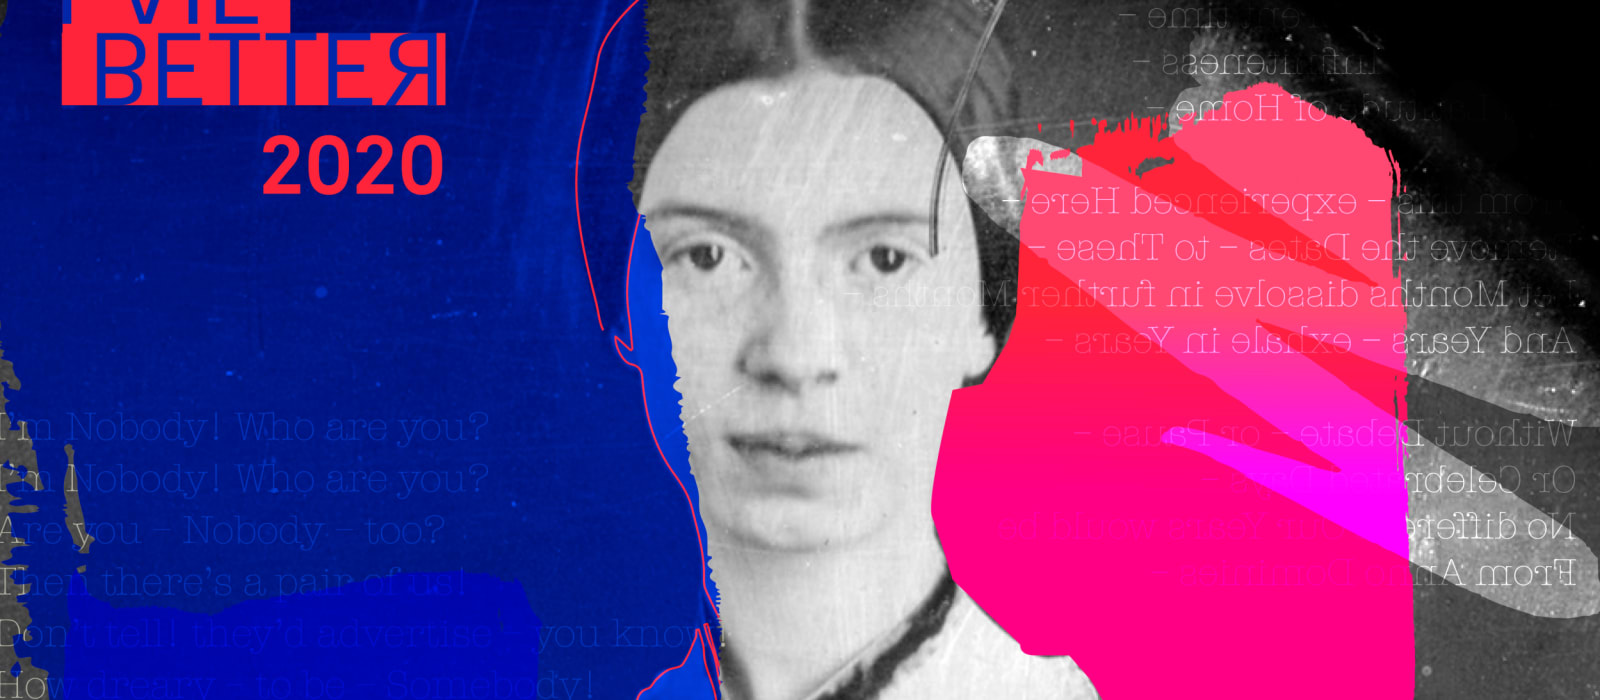 Profile image of poet Emily Dickinson